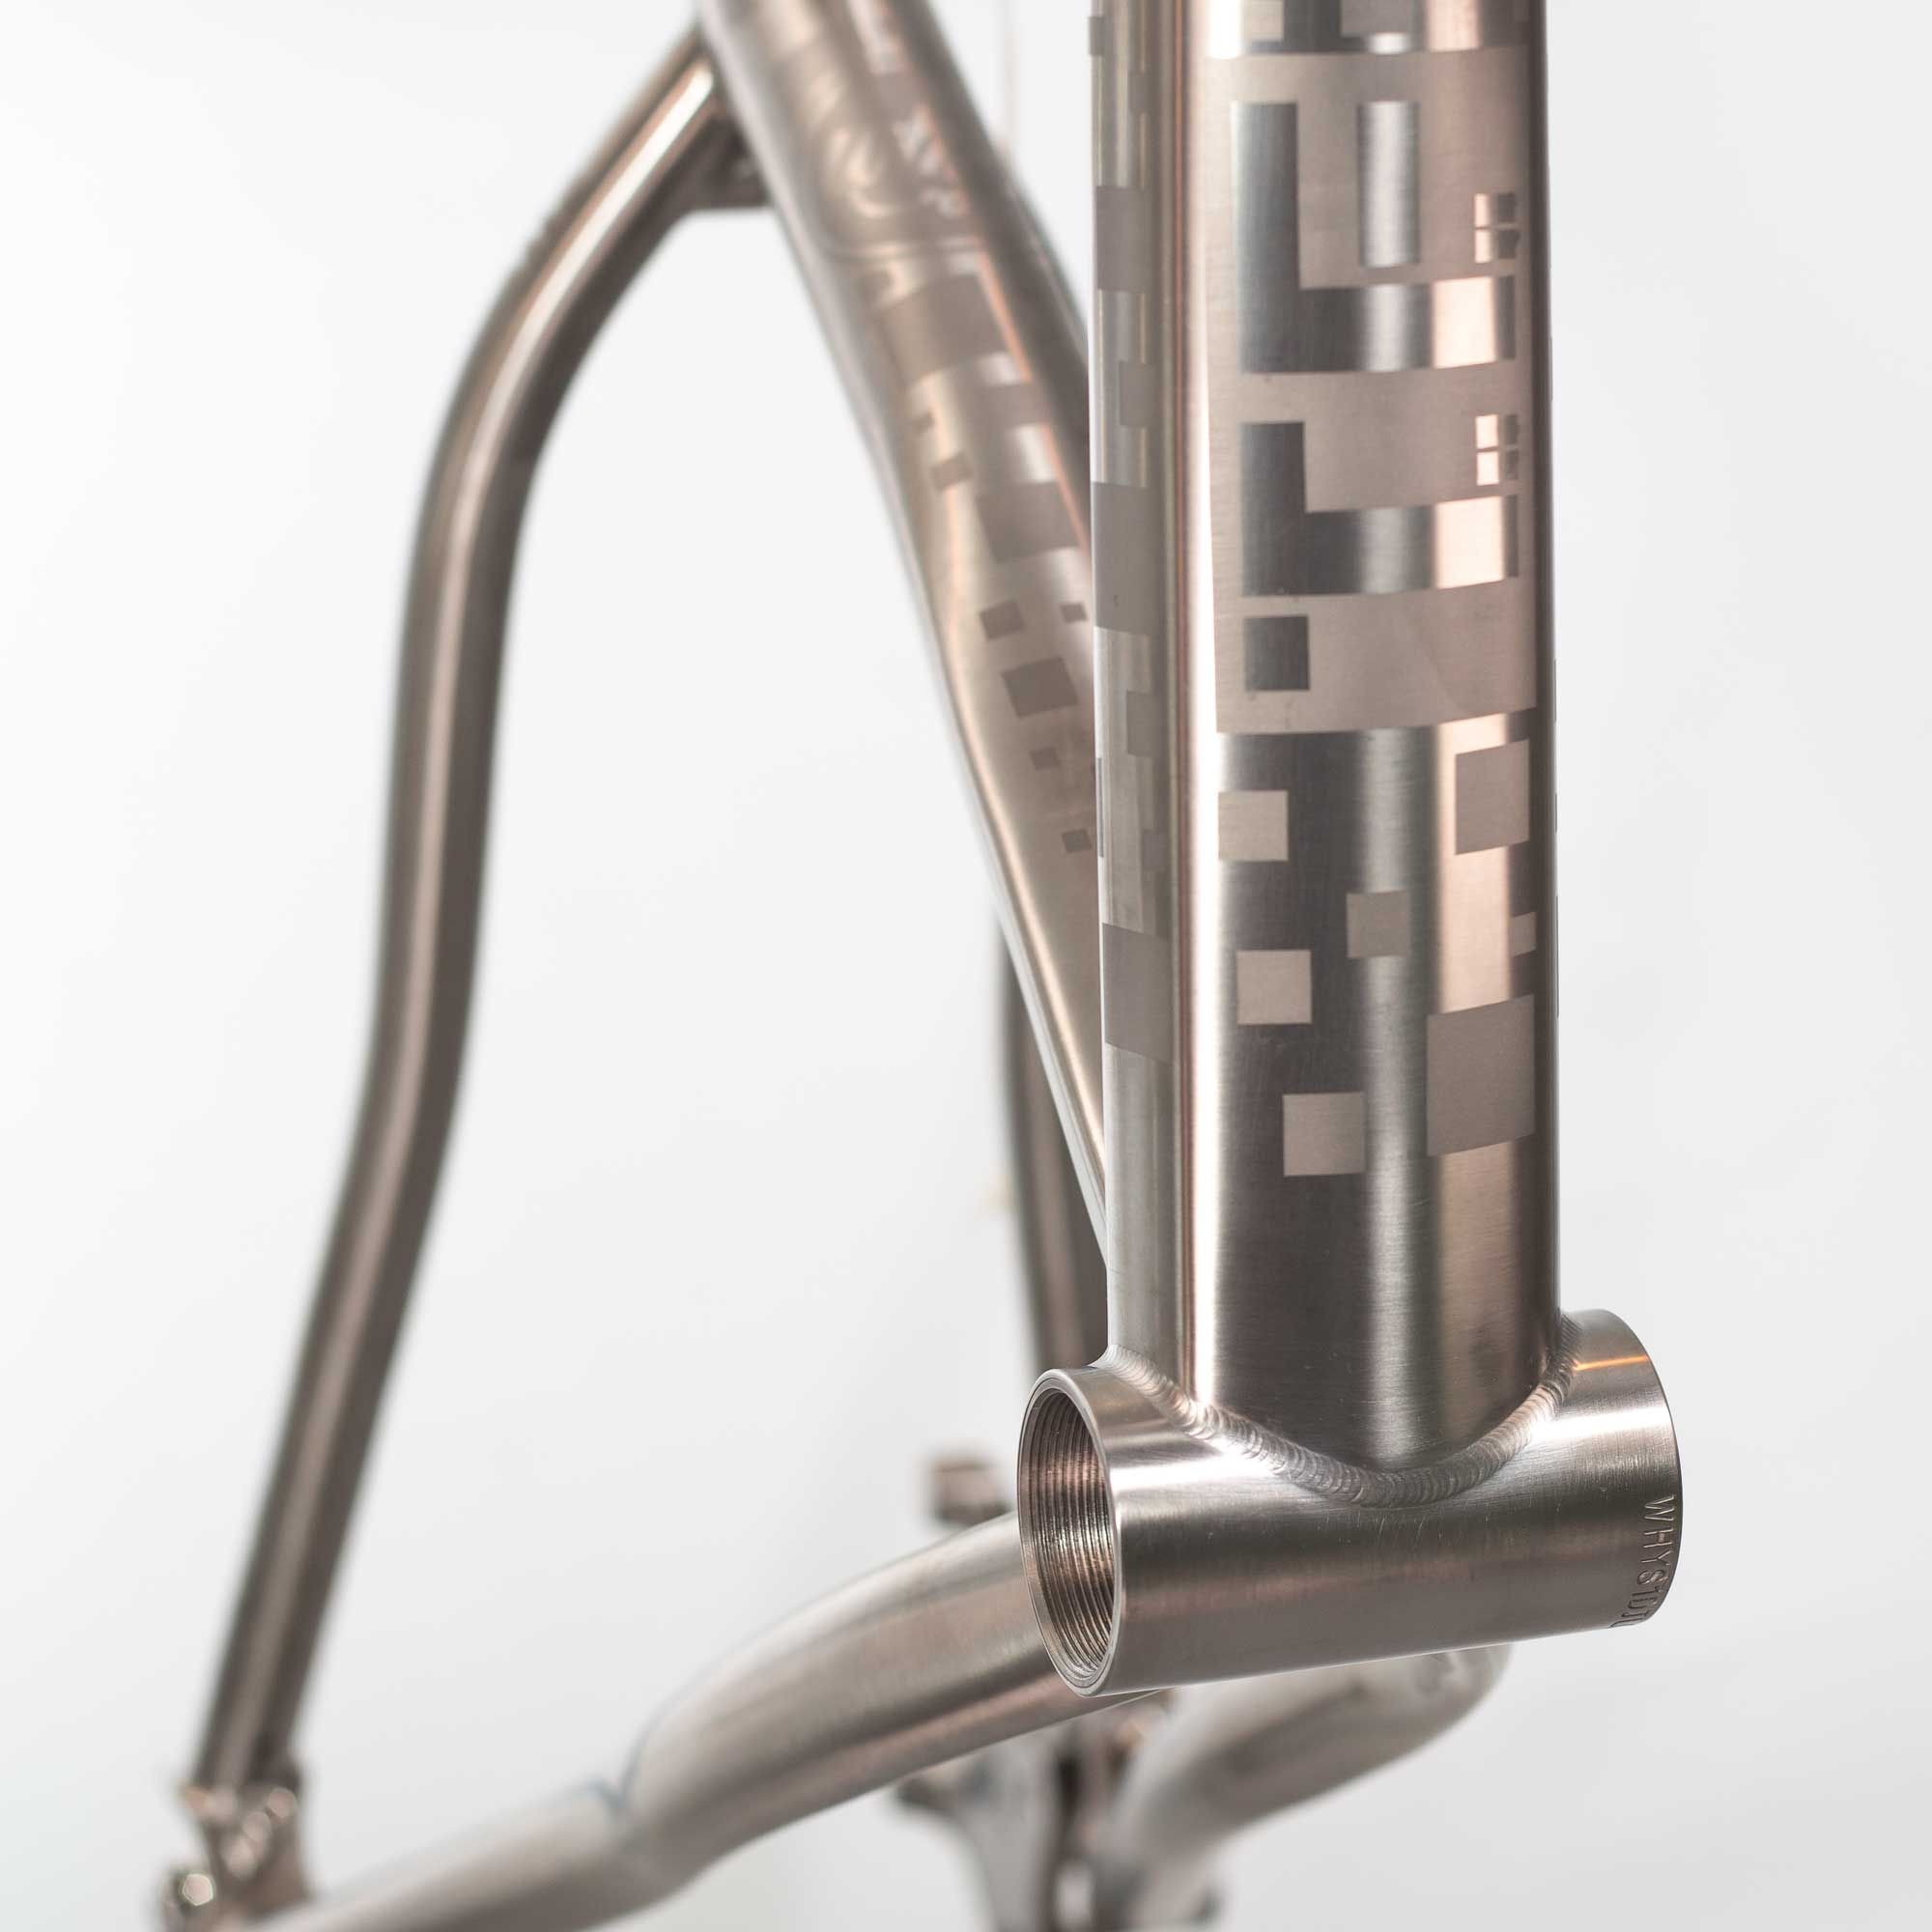 Why-Cycles-TF-seat-tube (4)